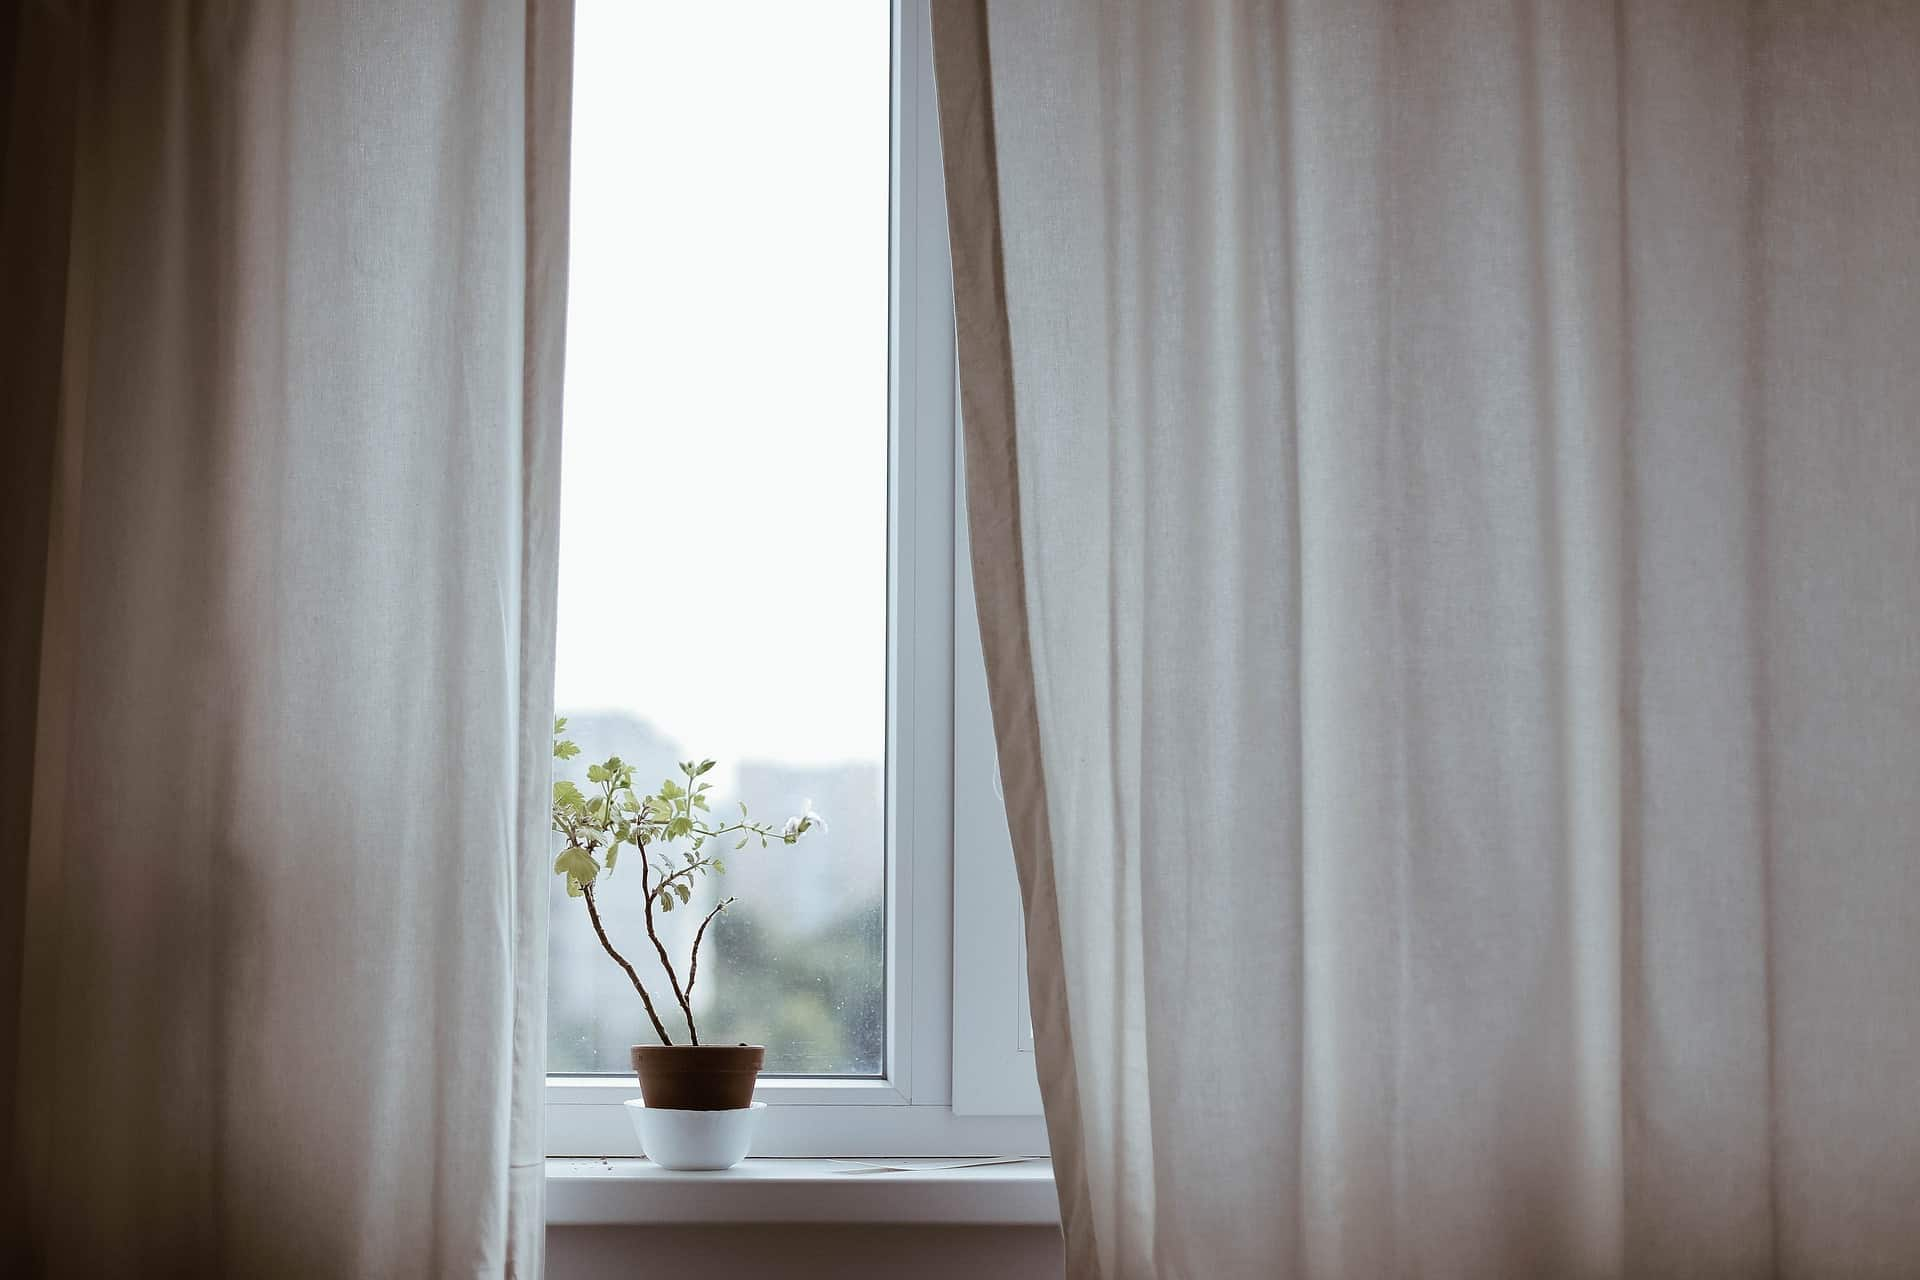 Window with white curtains and plant